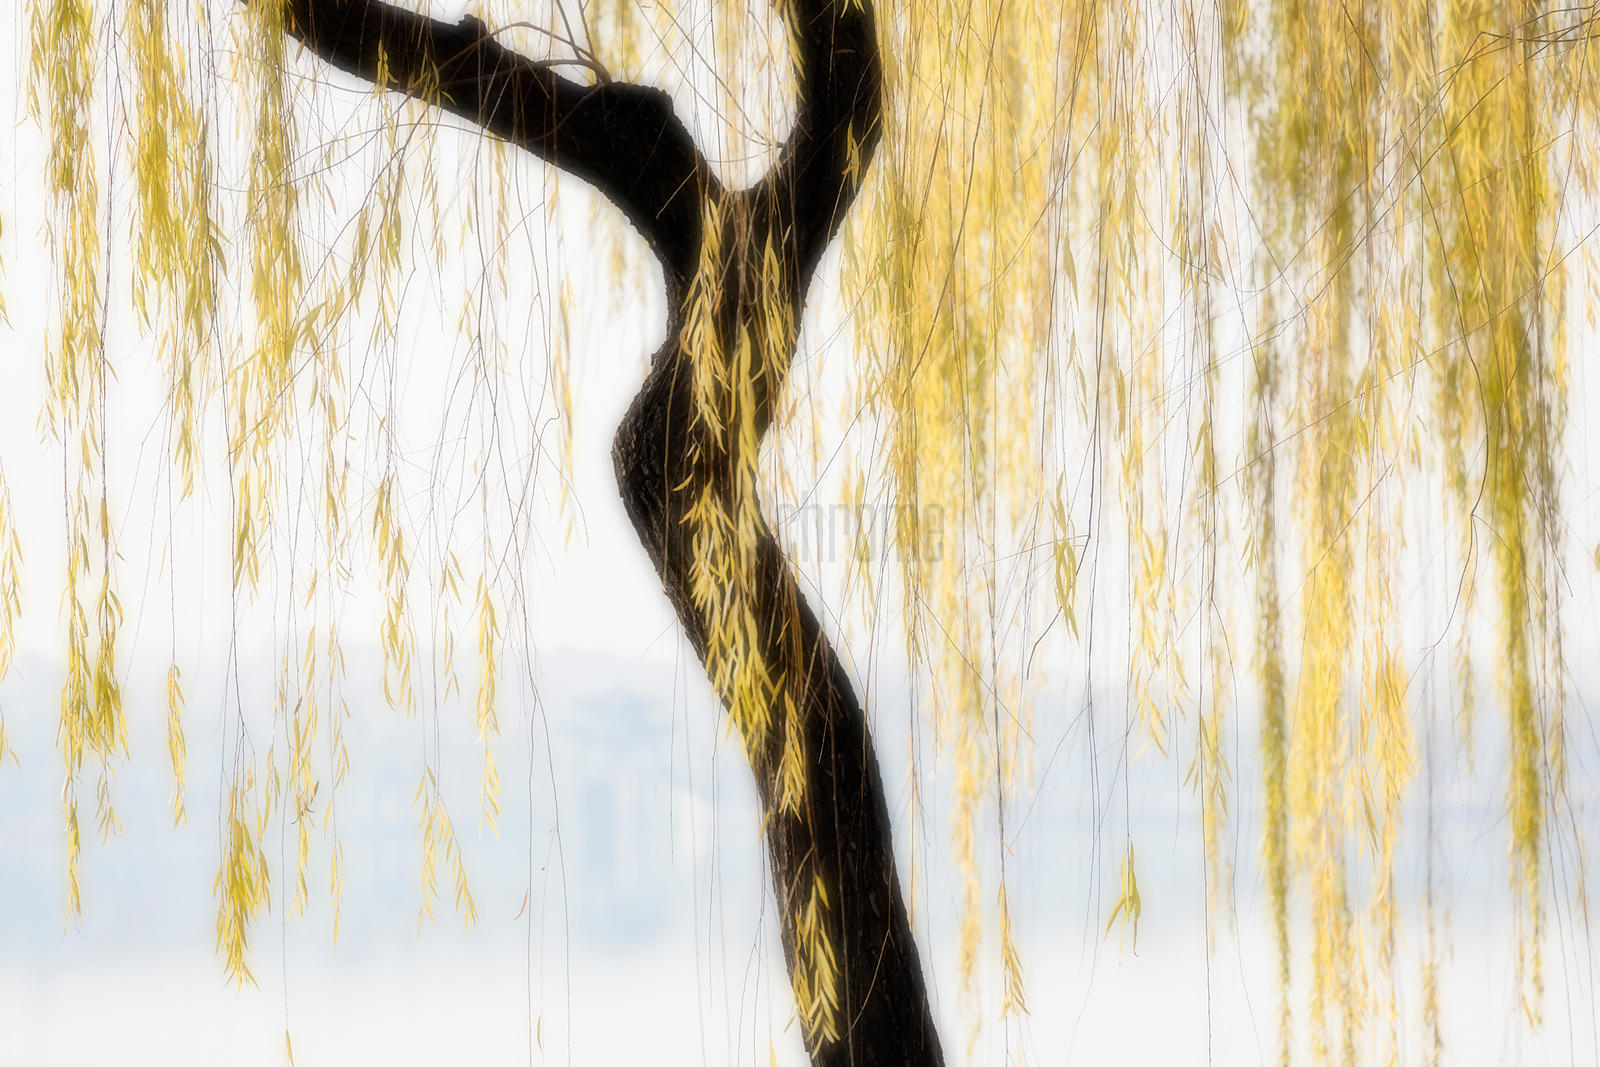 Kunming Lake through Autumn Willow Trees